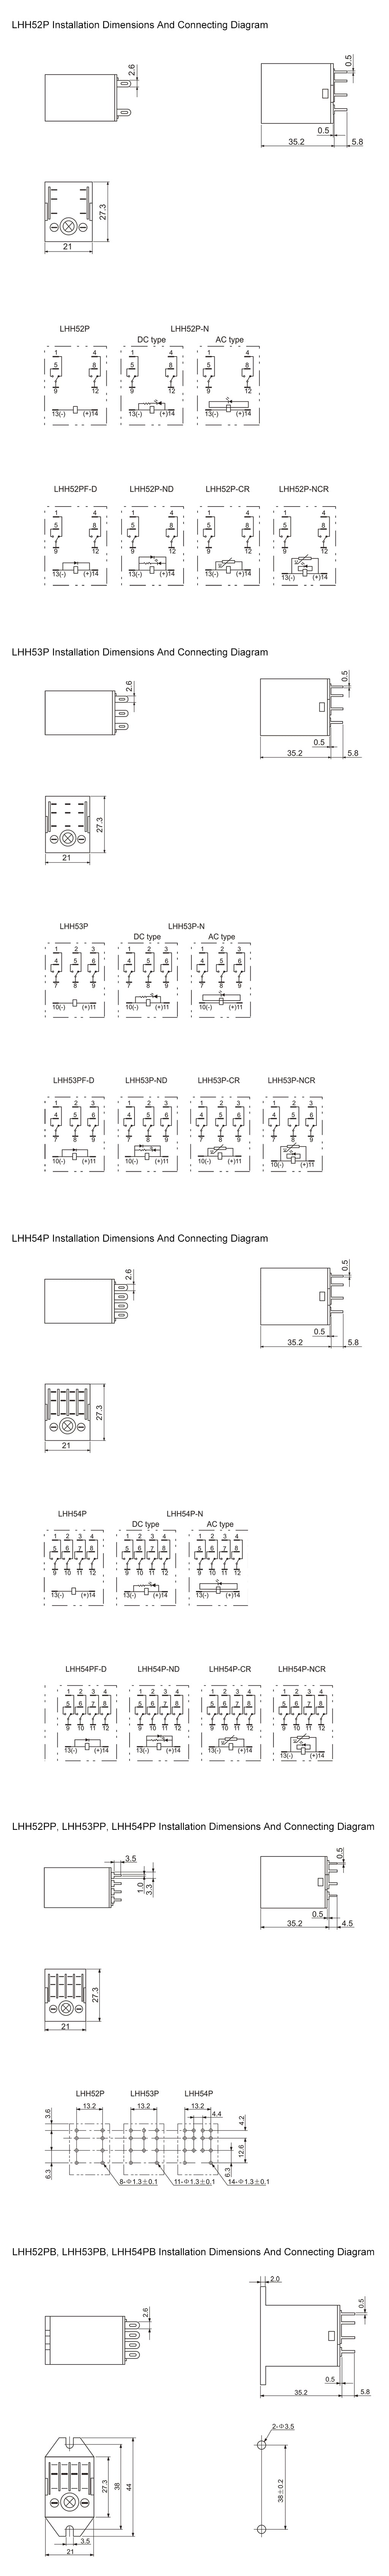 LHH Series Installation Dimension and Connecting Diagram